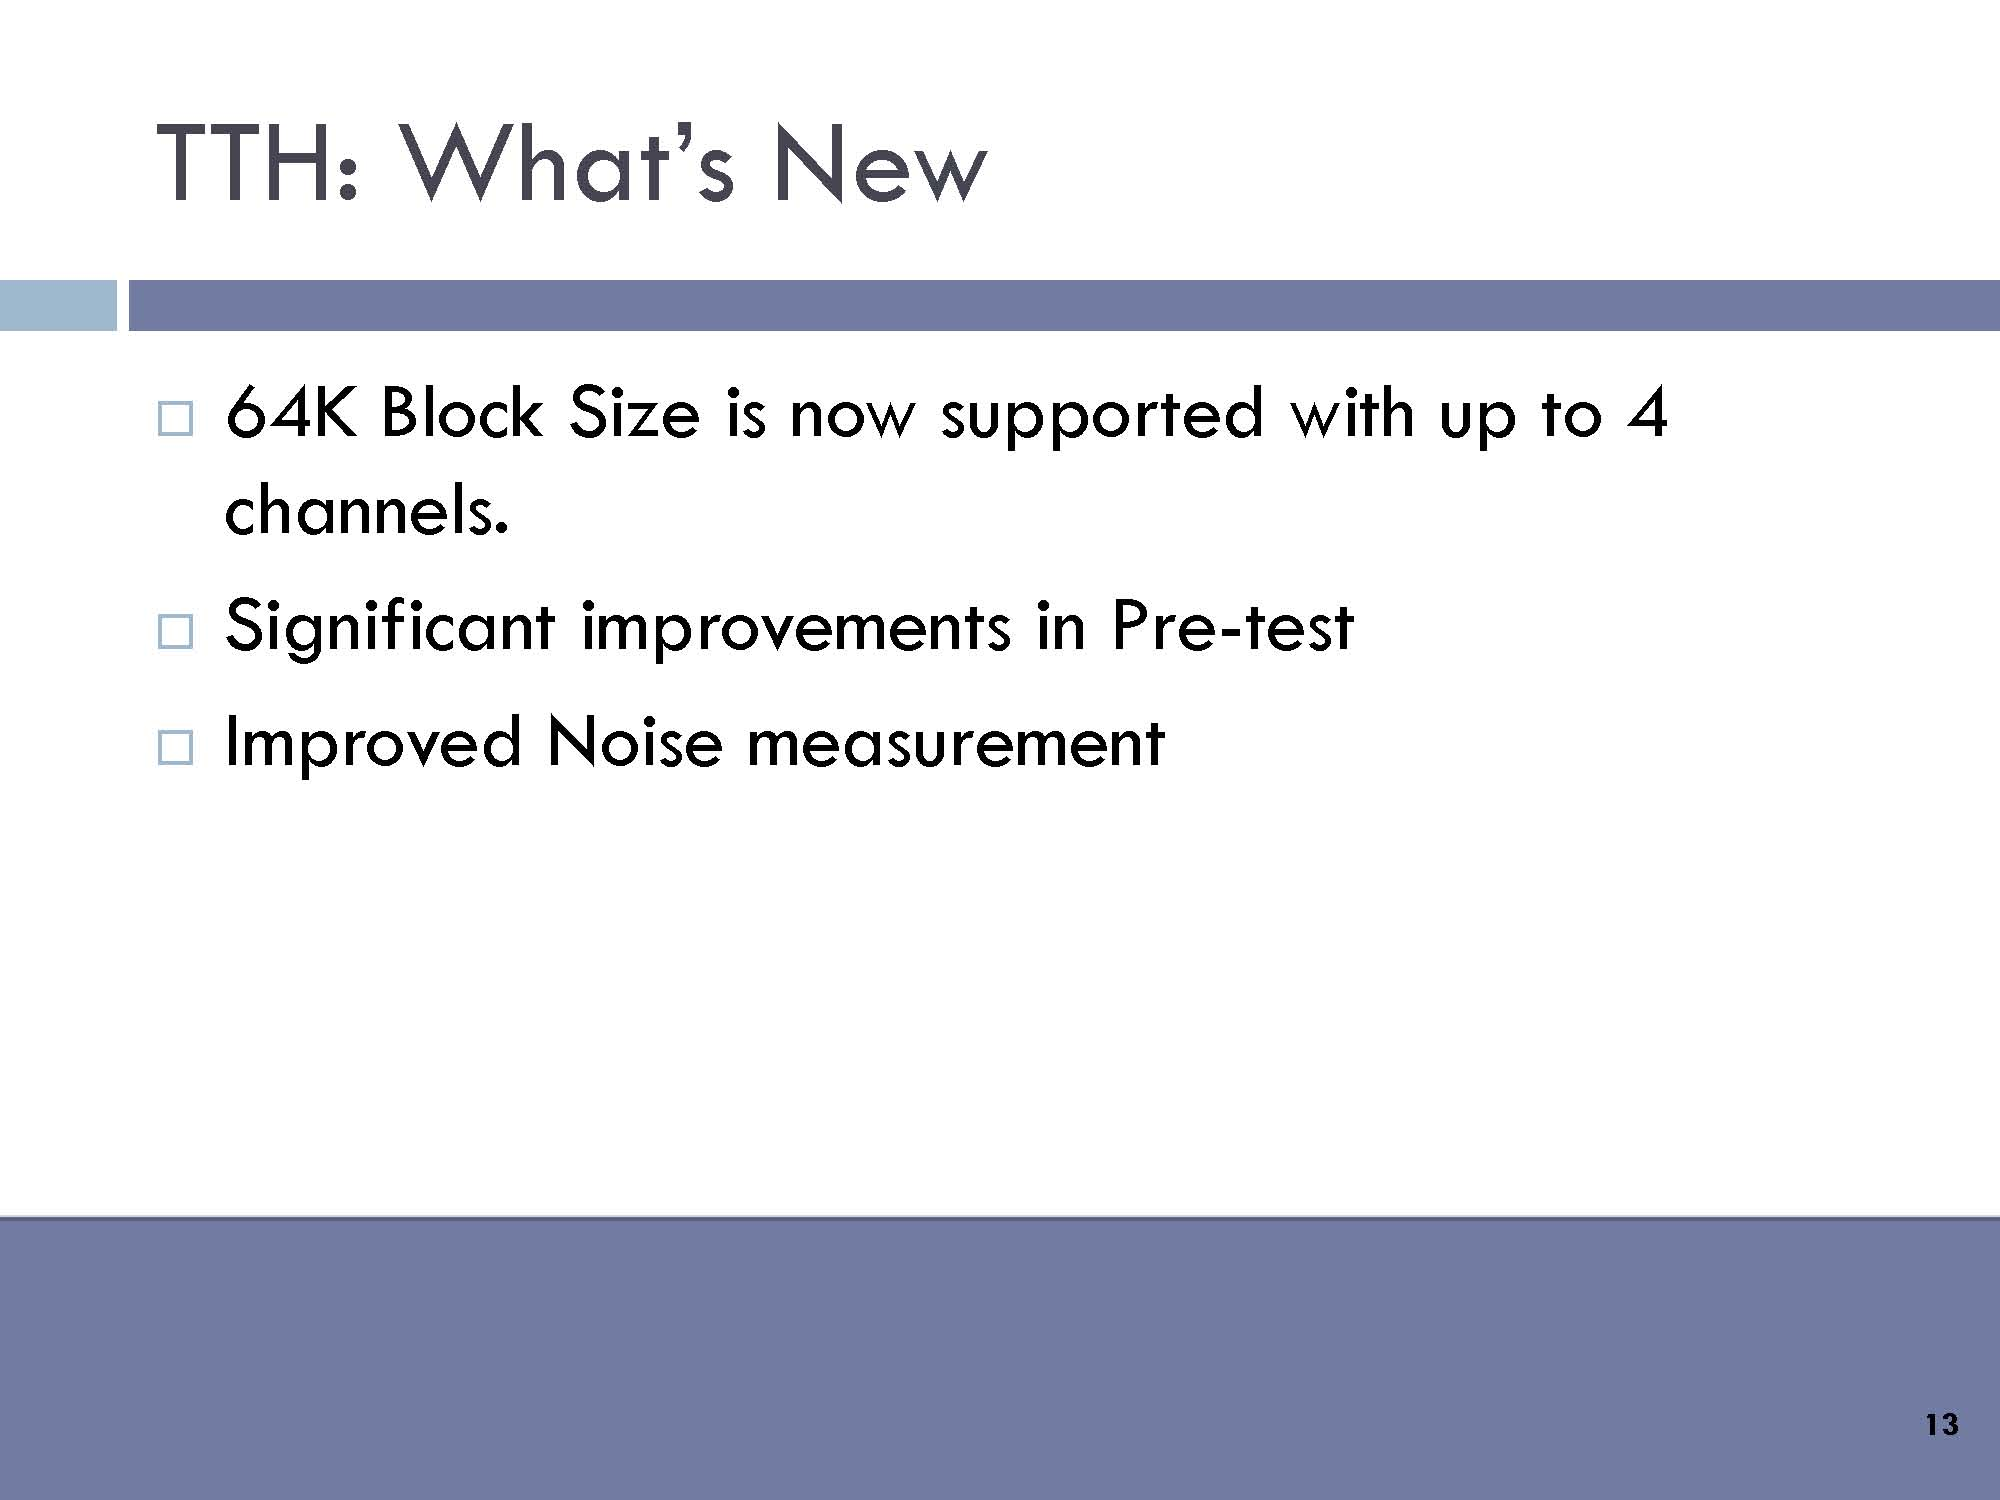 TTH: What's New – 64K block size is now supported with up to 4 channels. Significant improvements in pre-test. Improved noise measurement.